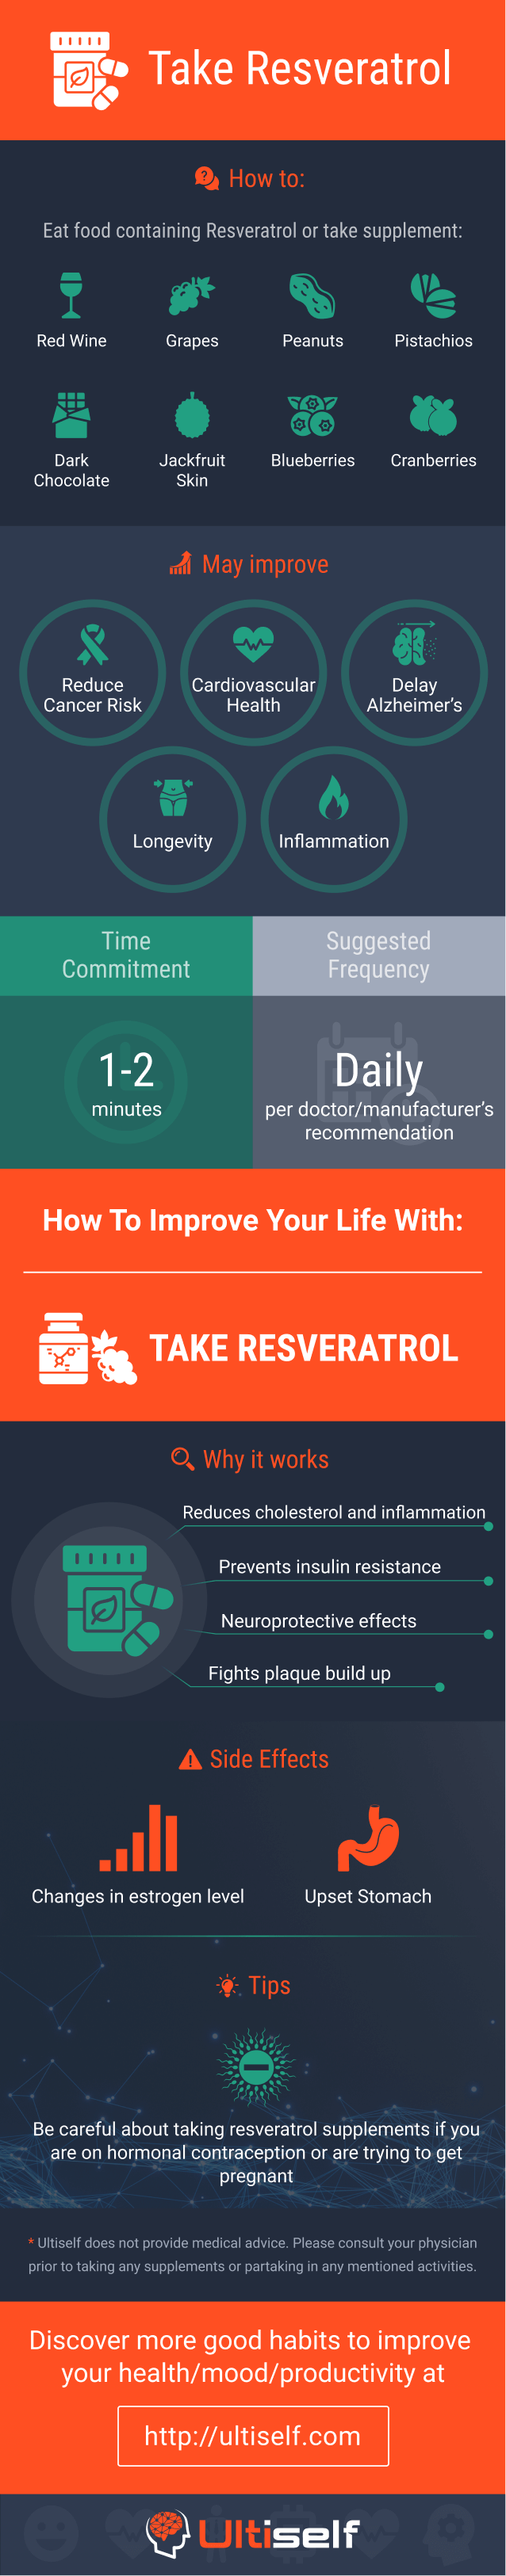 Take resveratrol infographic